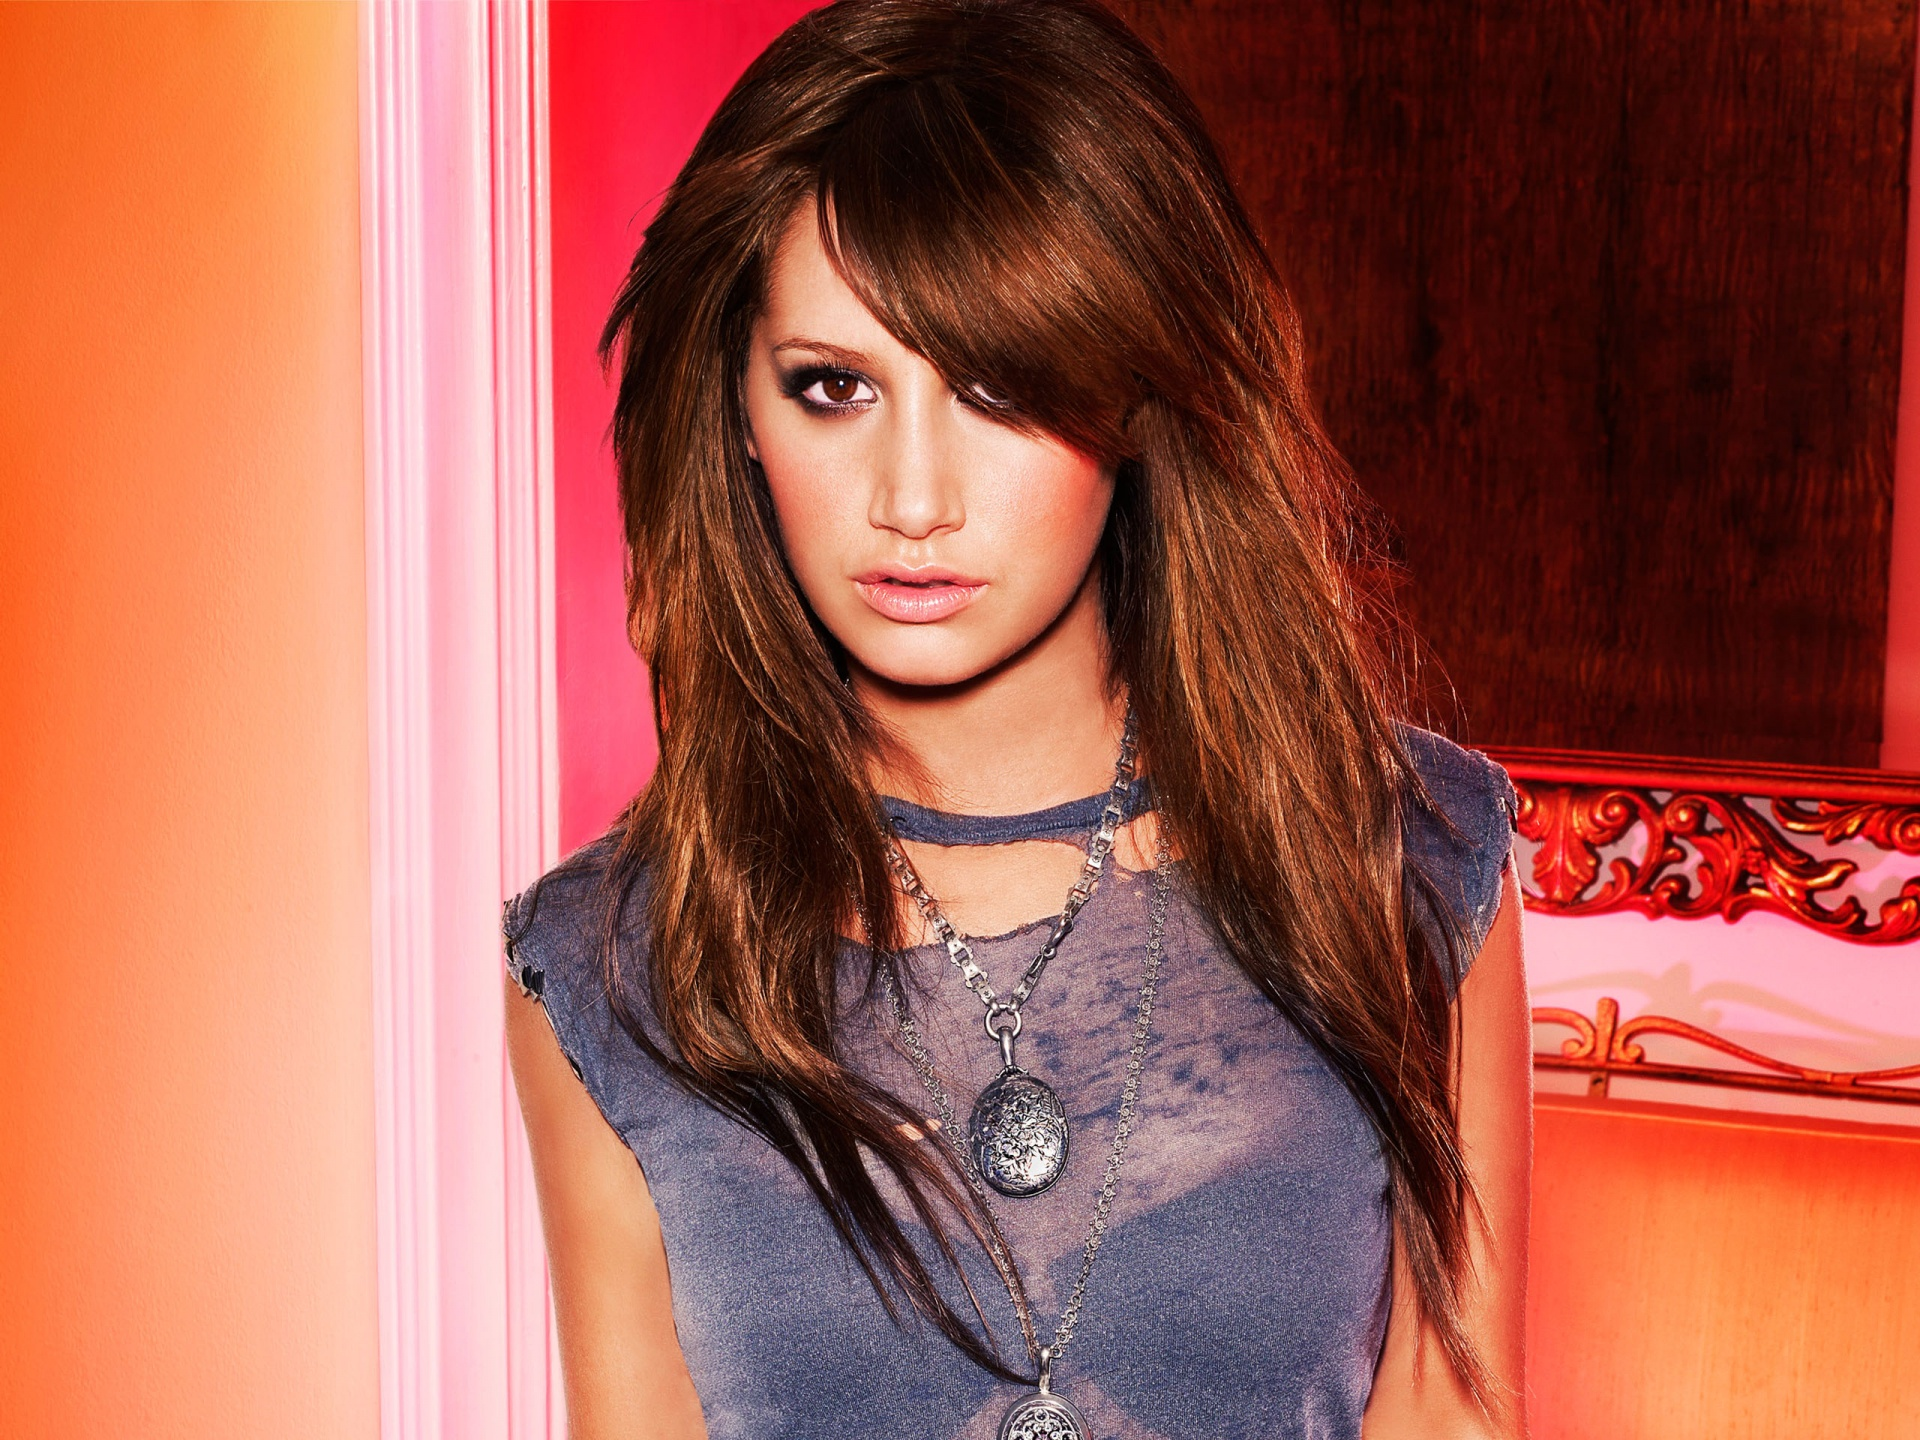 ashley tisdale wallpapers hd A5